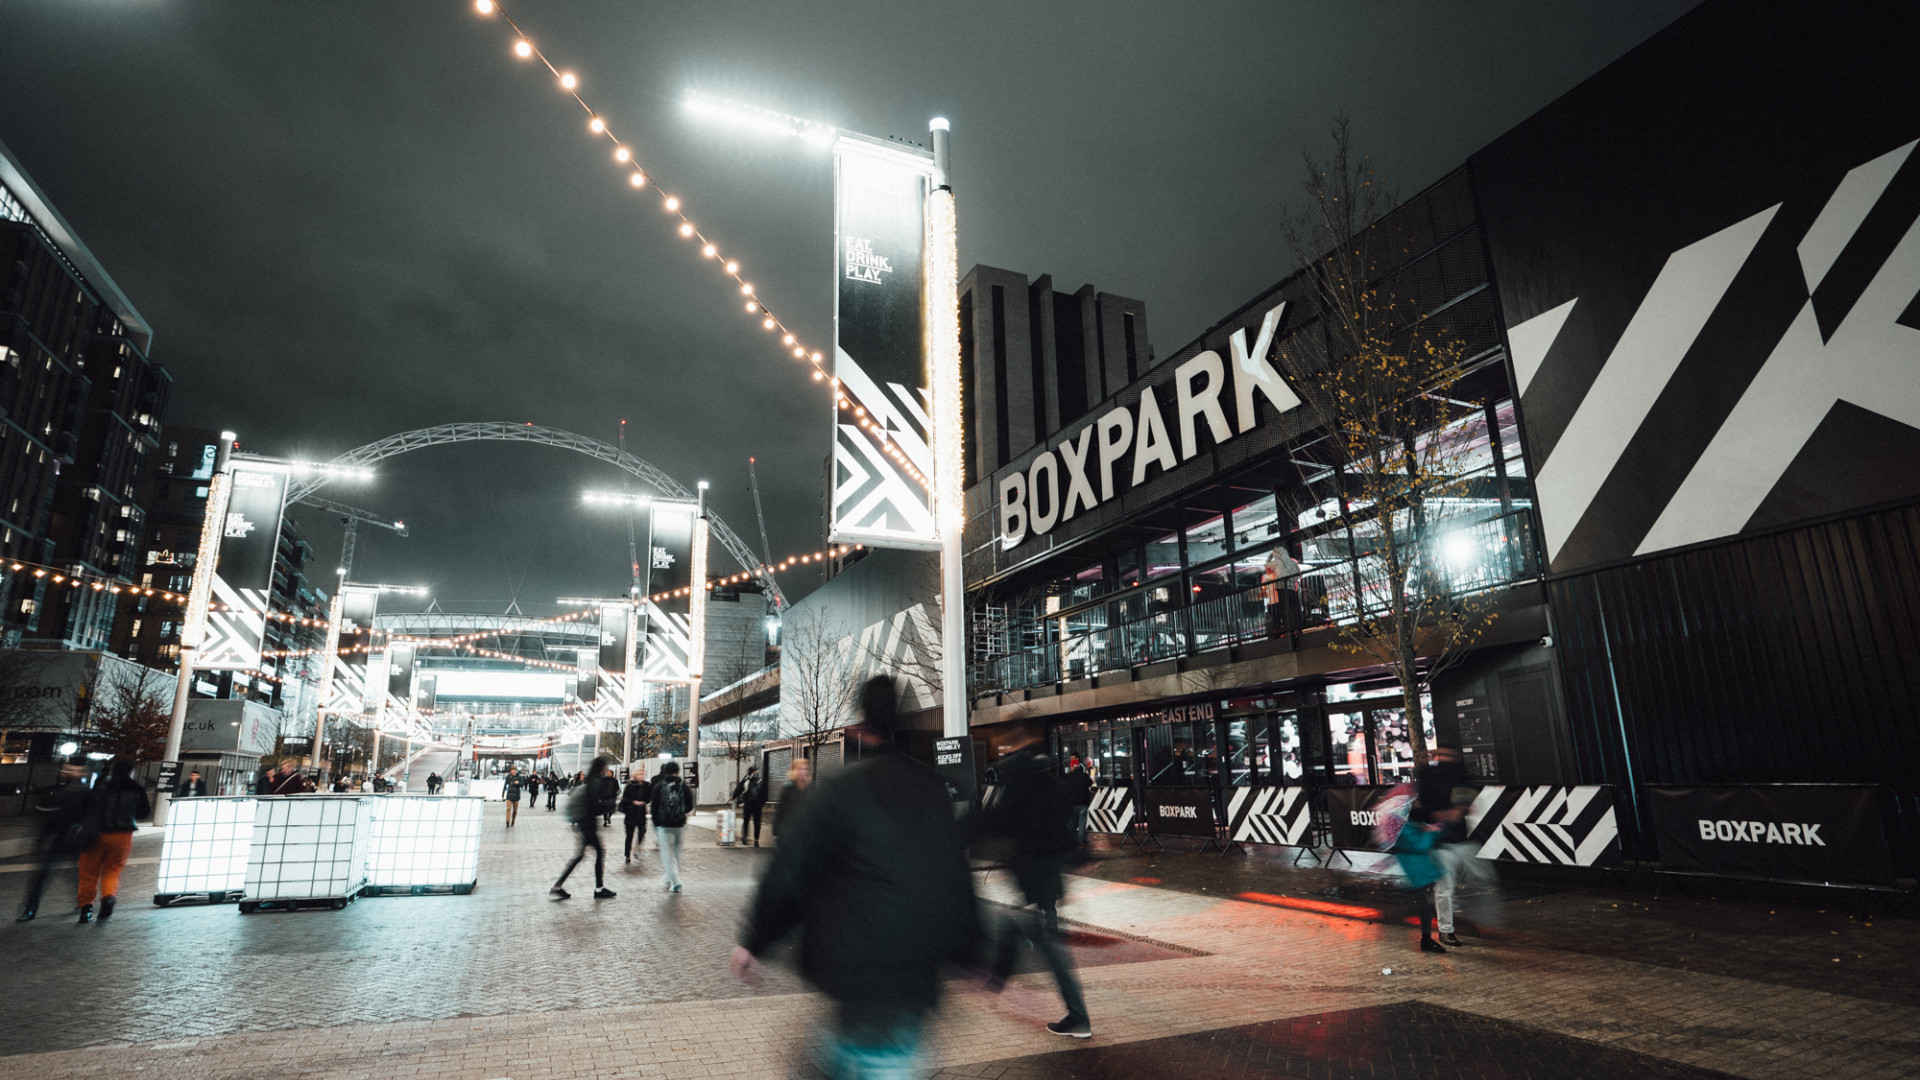 The best food markets in London - Boxpark